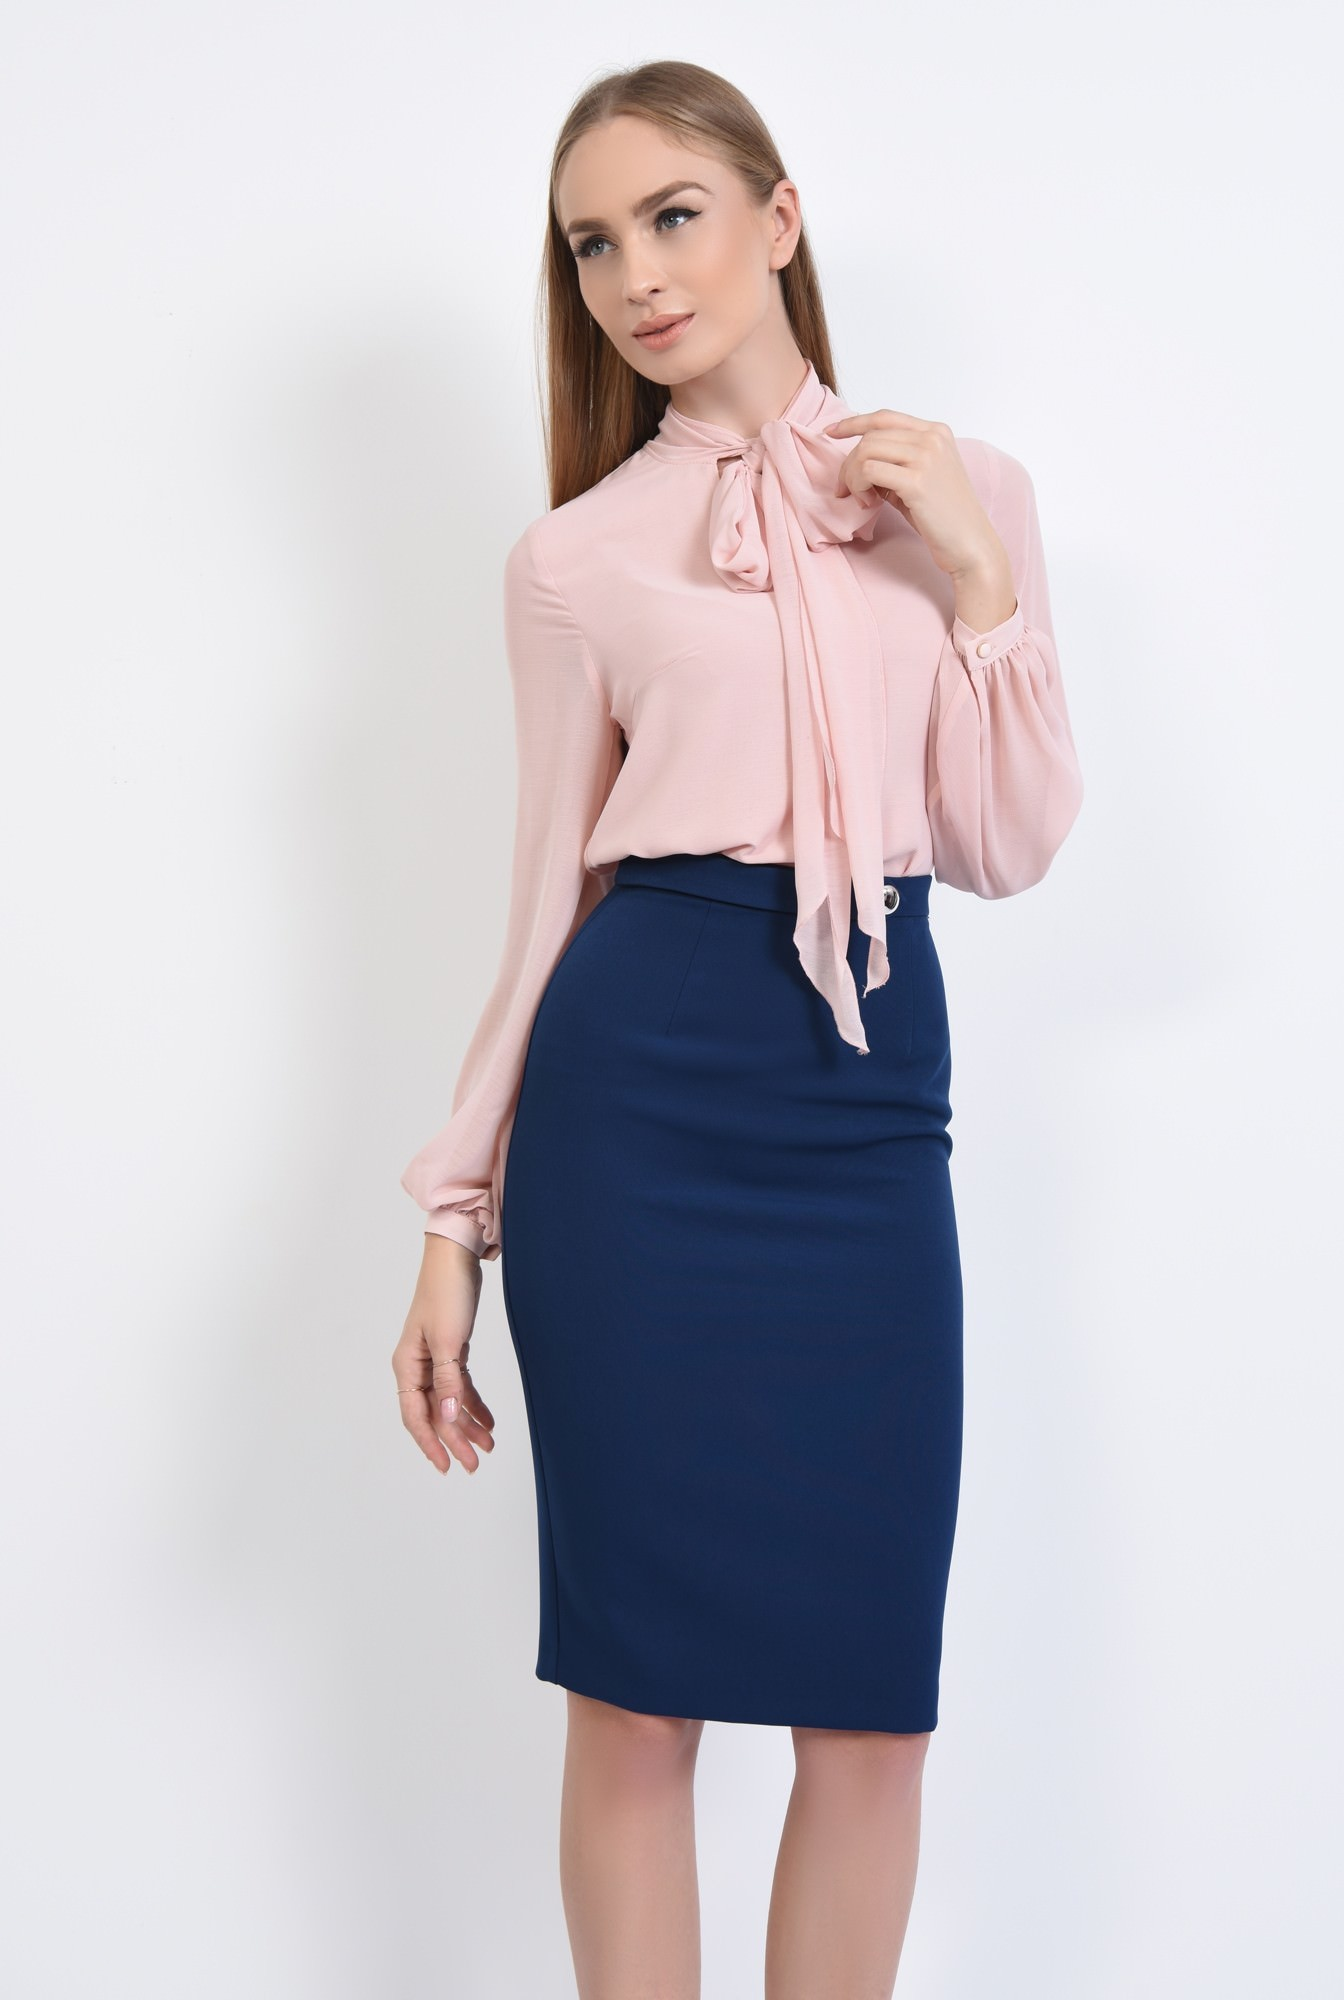 0 - BLUZA OFFICE BL 290-ROZ